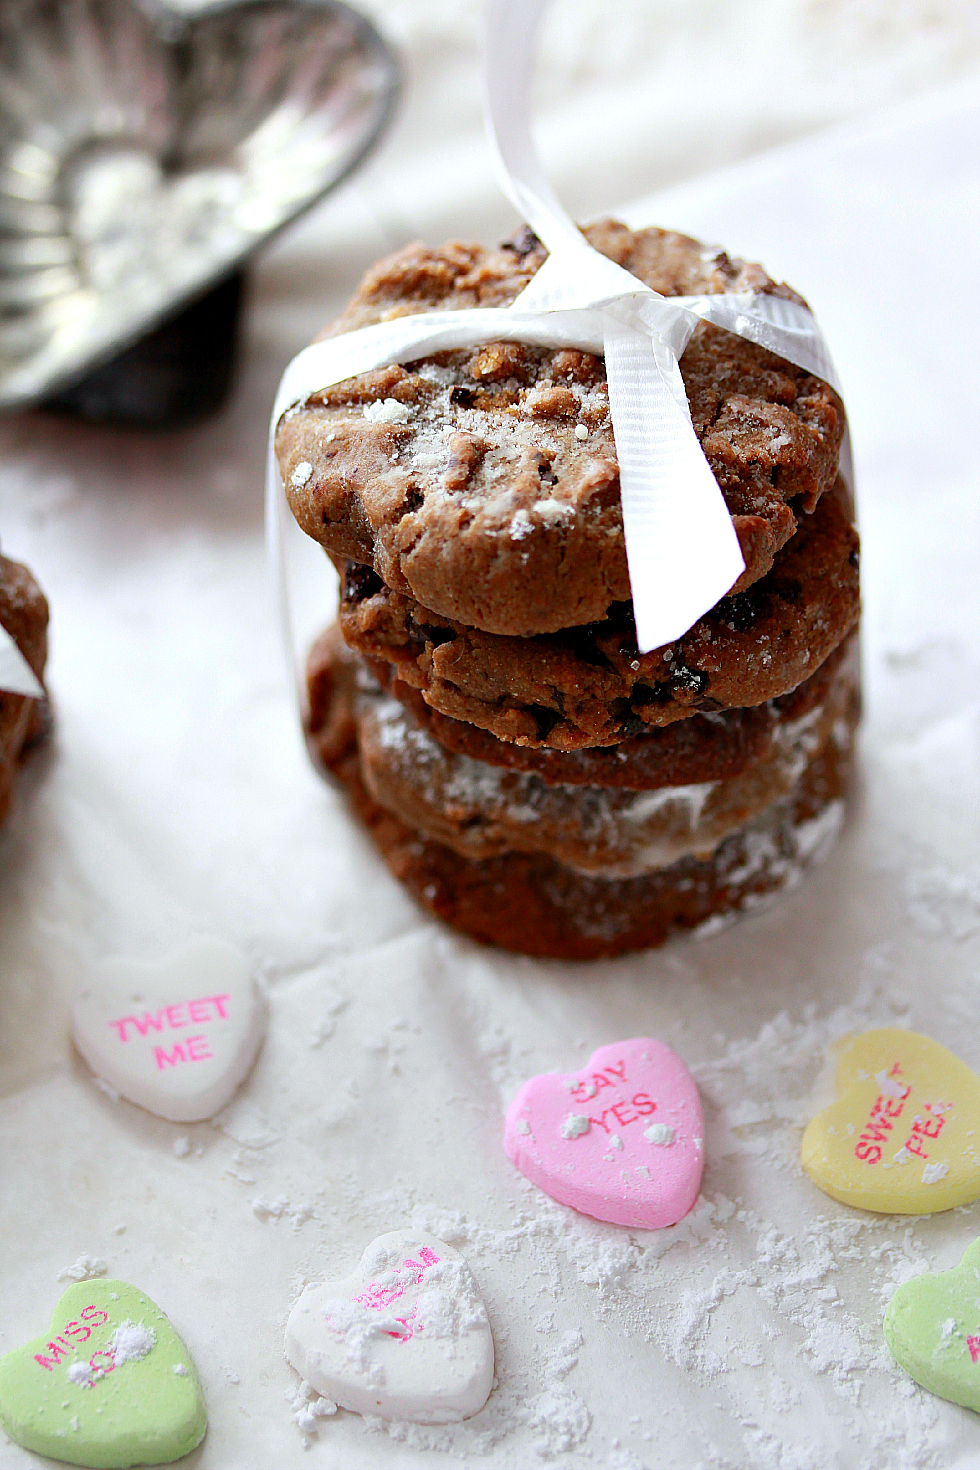 ©Sunflower Butter Cookies withValentine Candies by Dena T Bray